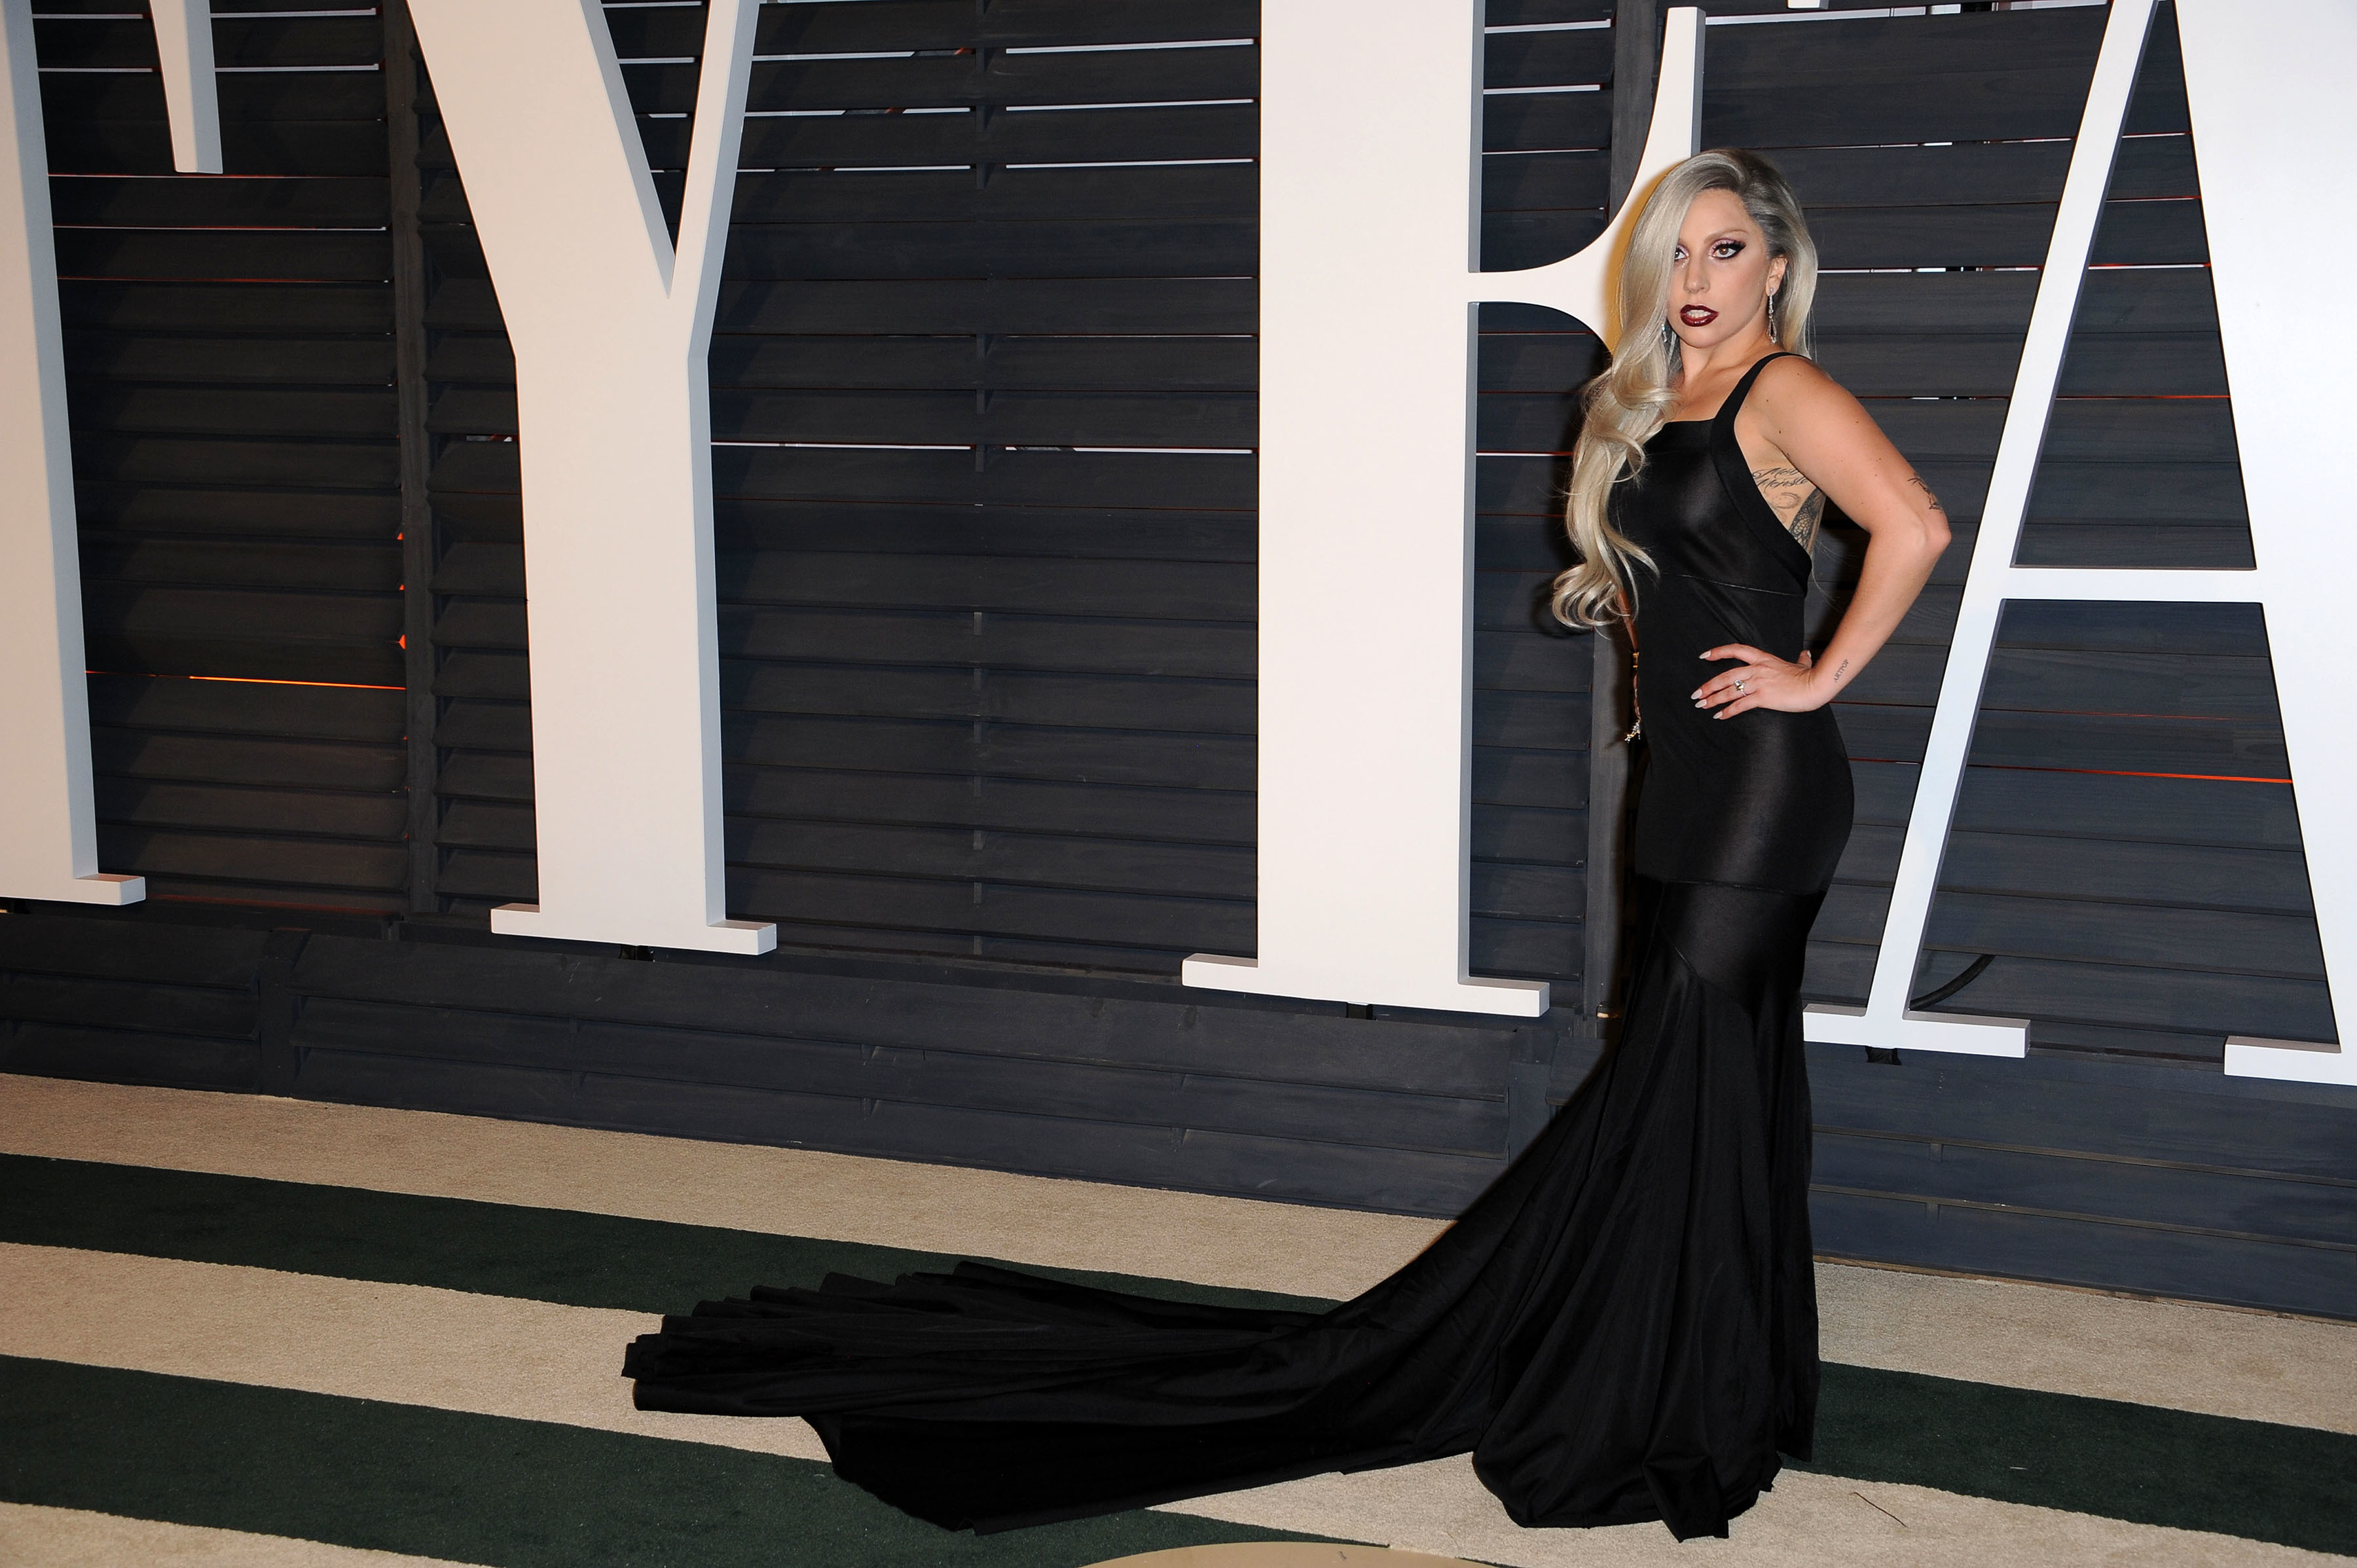 Lady Gaga is Going to be on 'American Horror Story'